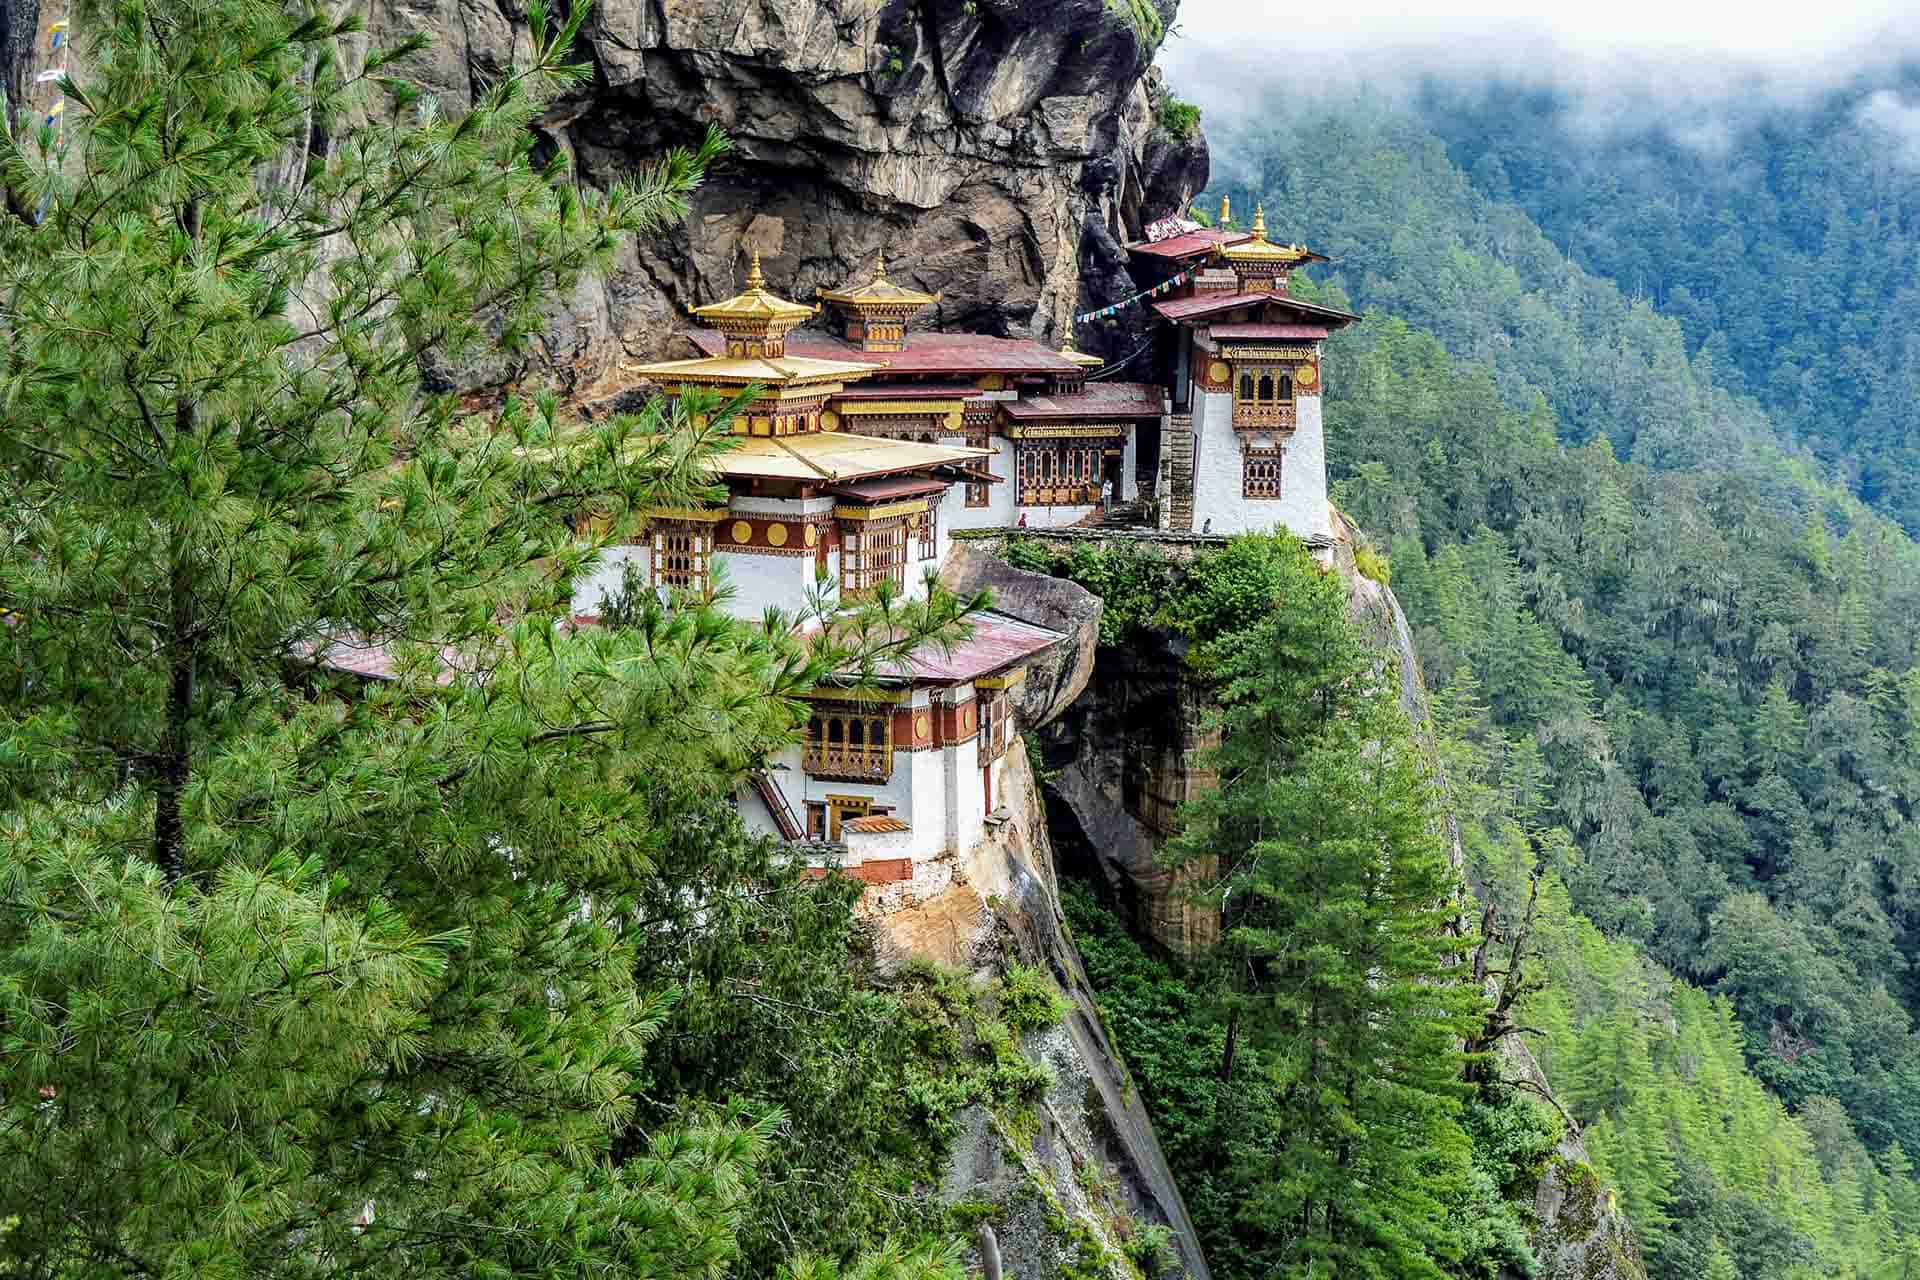 Searching for the Gross National Happiness in the Tiger's